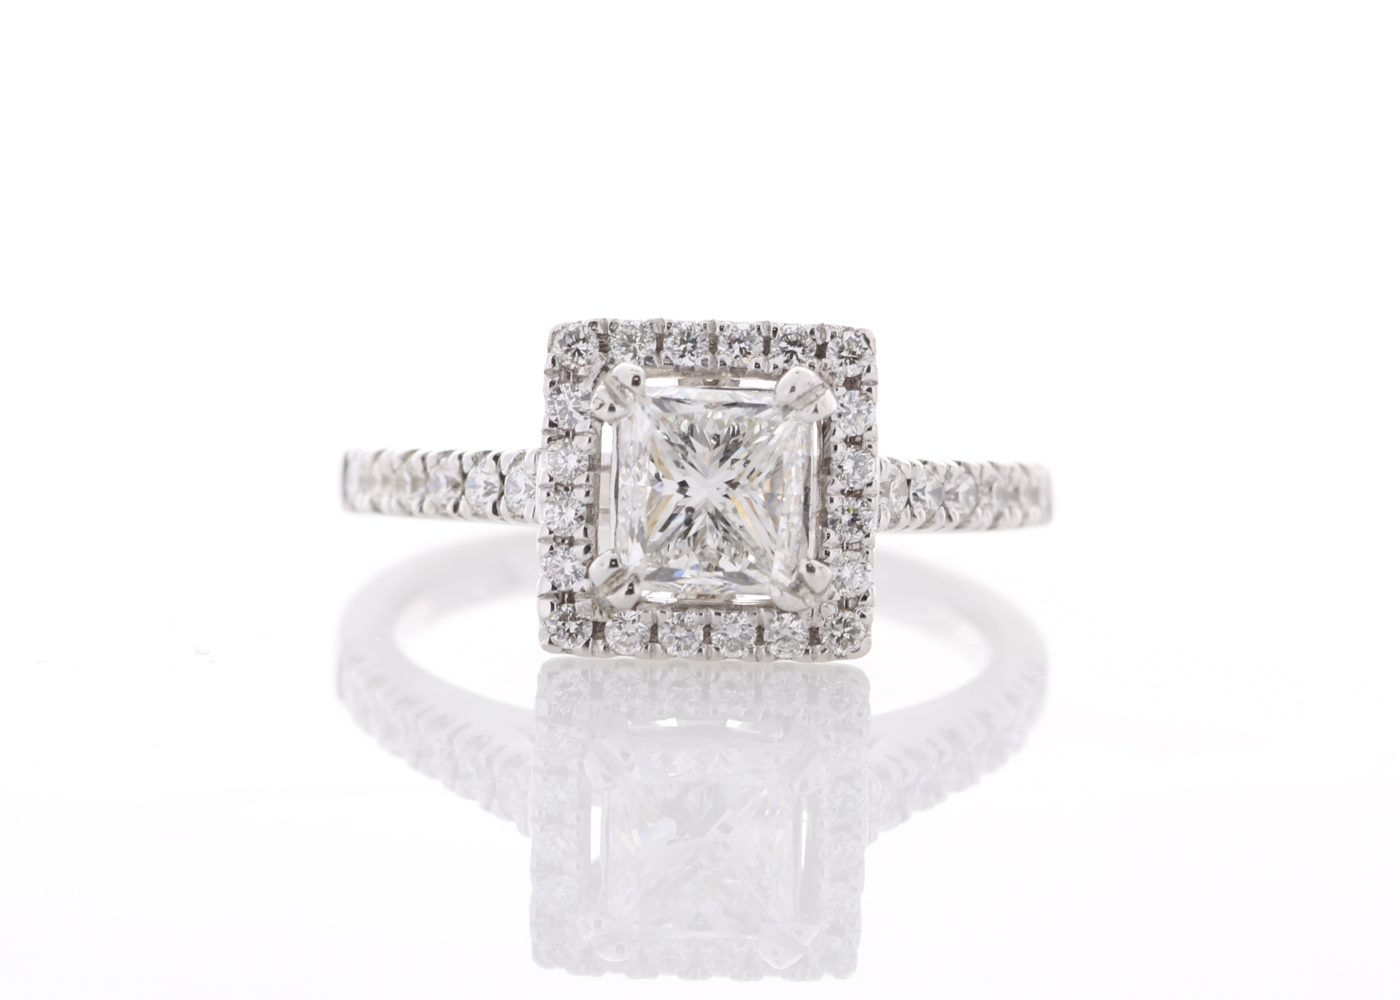 Lot 12 - 18ct White Gold Single Stone Princess Cut Diamond Ring (1.00) 1.34